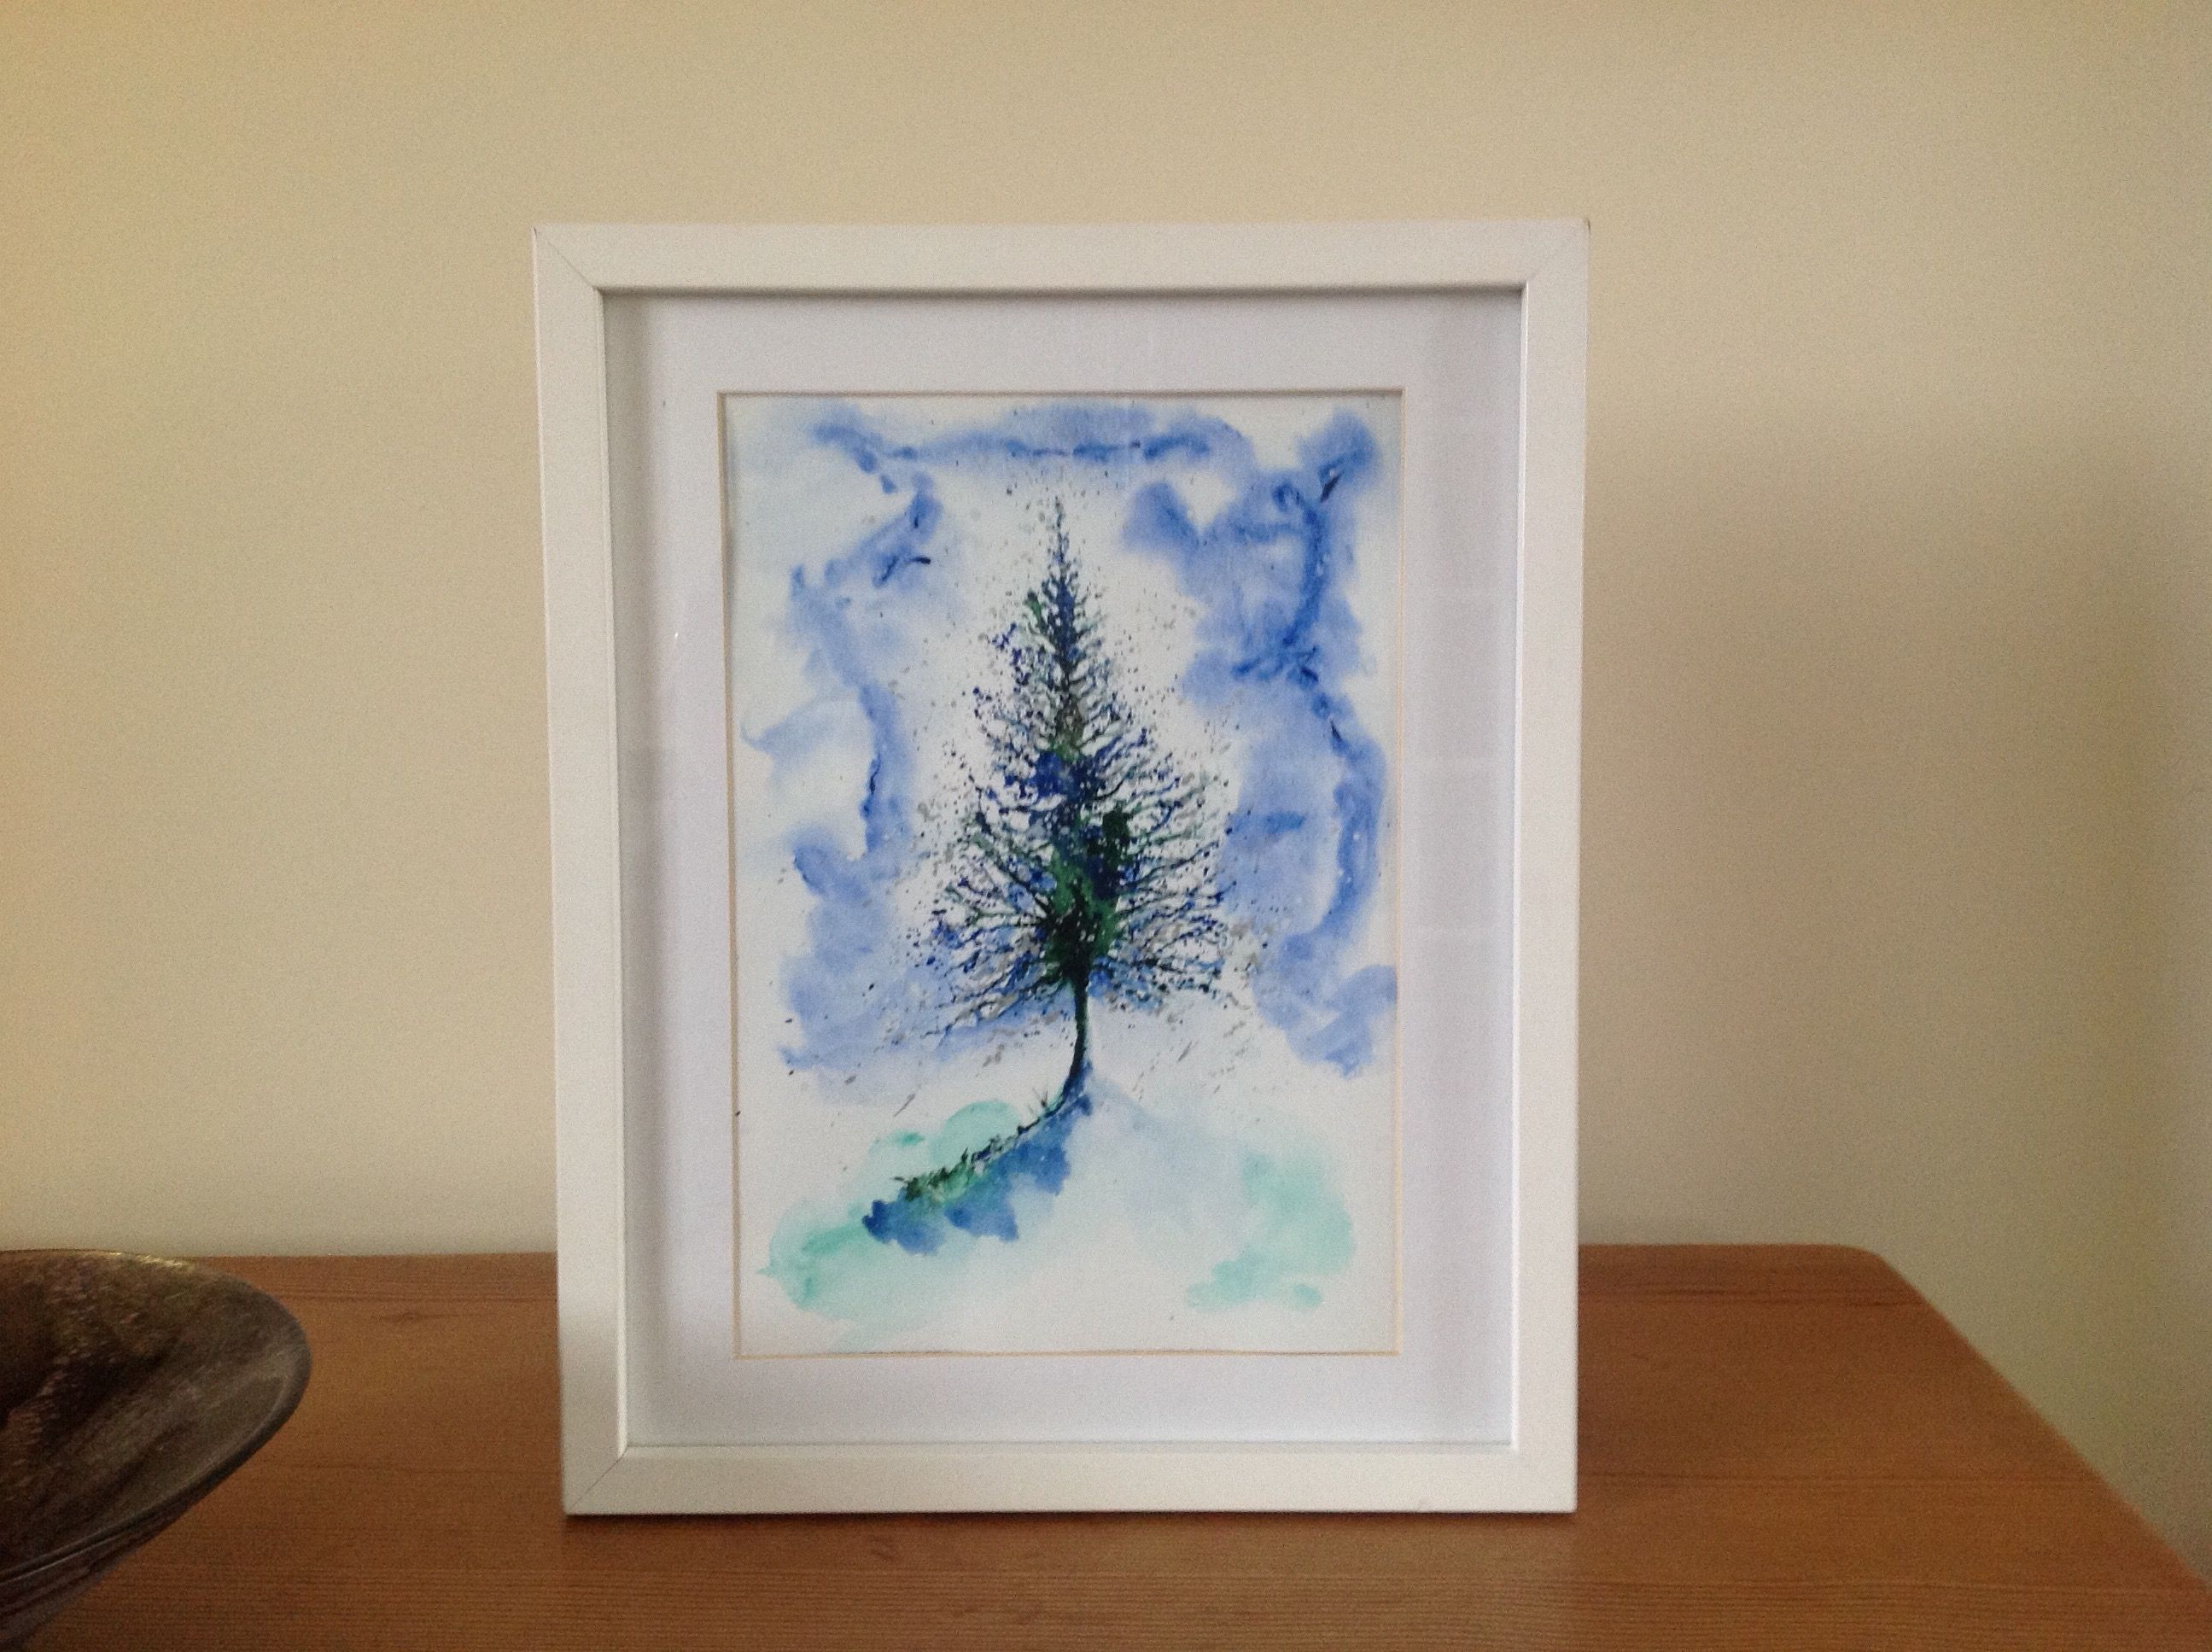 Snow is in the Air. Watercolour. See more at https://www.artfinder.com/tina-hiles